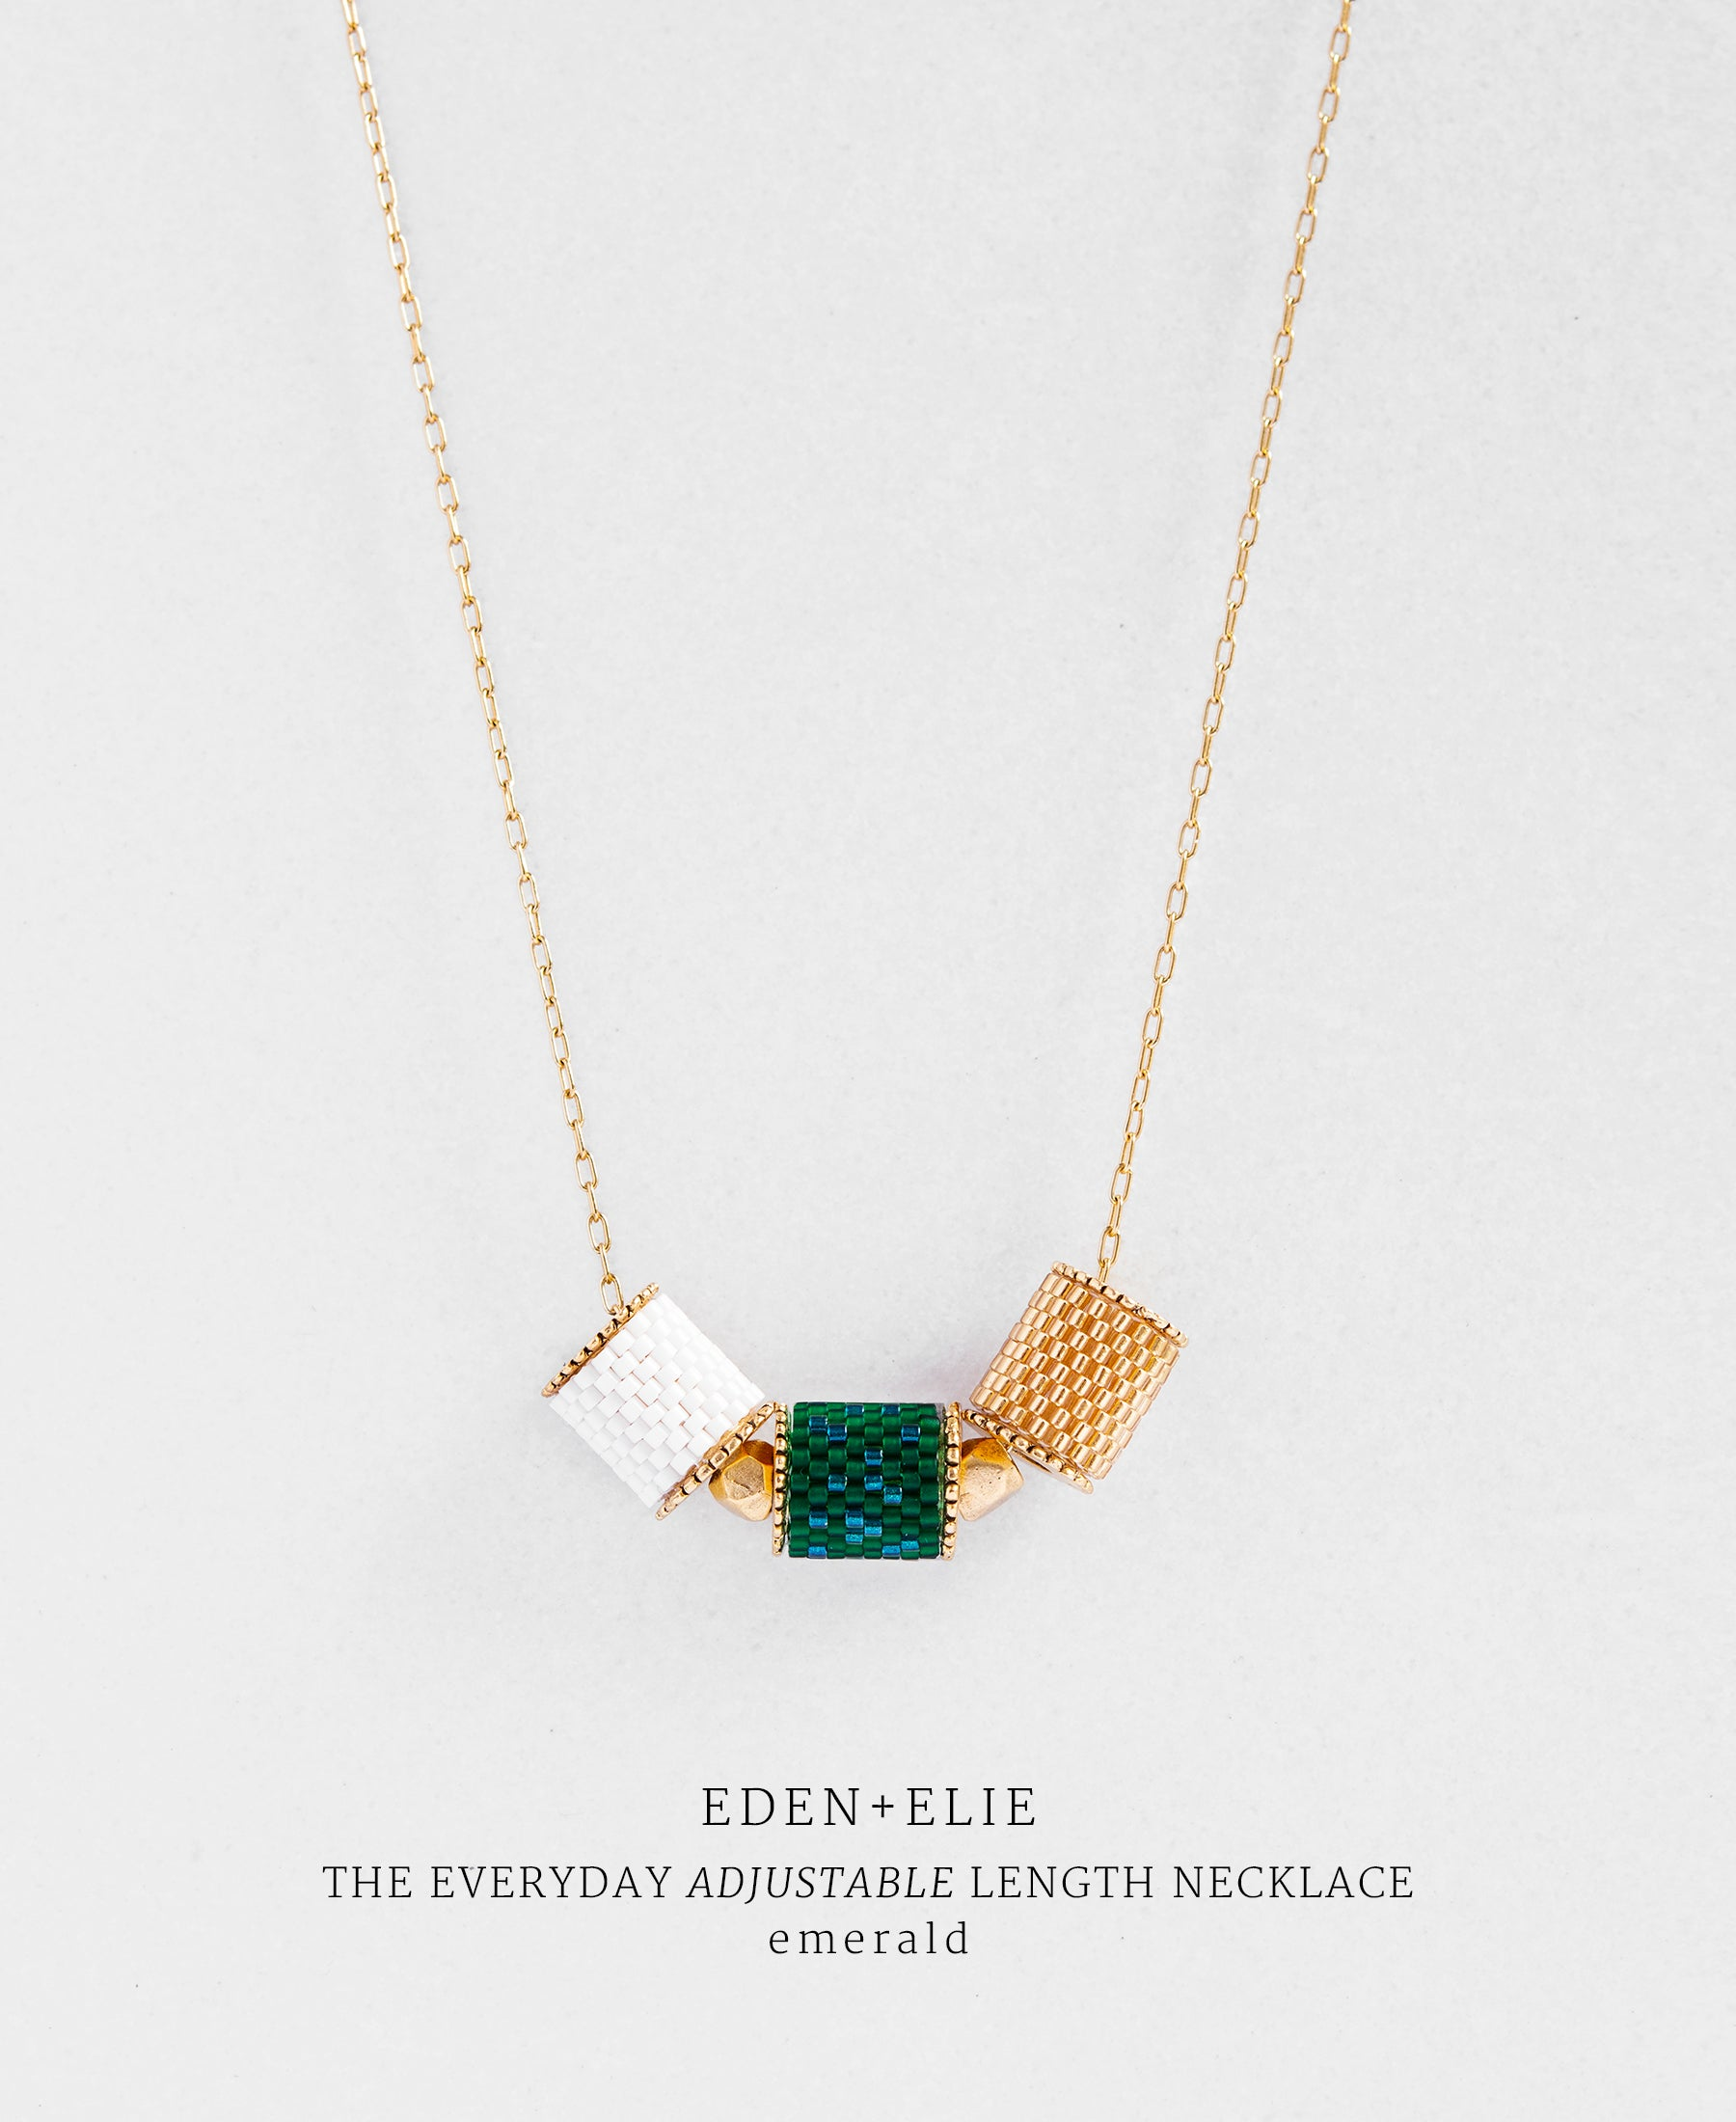 EDEN + ELIE Everyday adjustable length necklace - emerald green